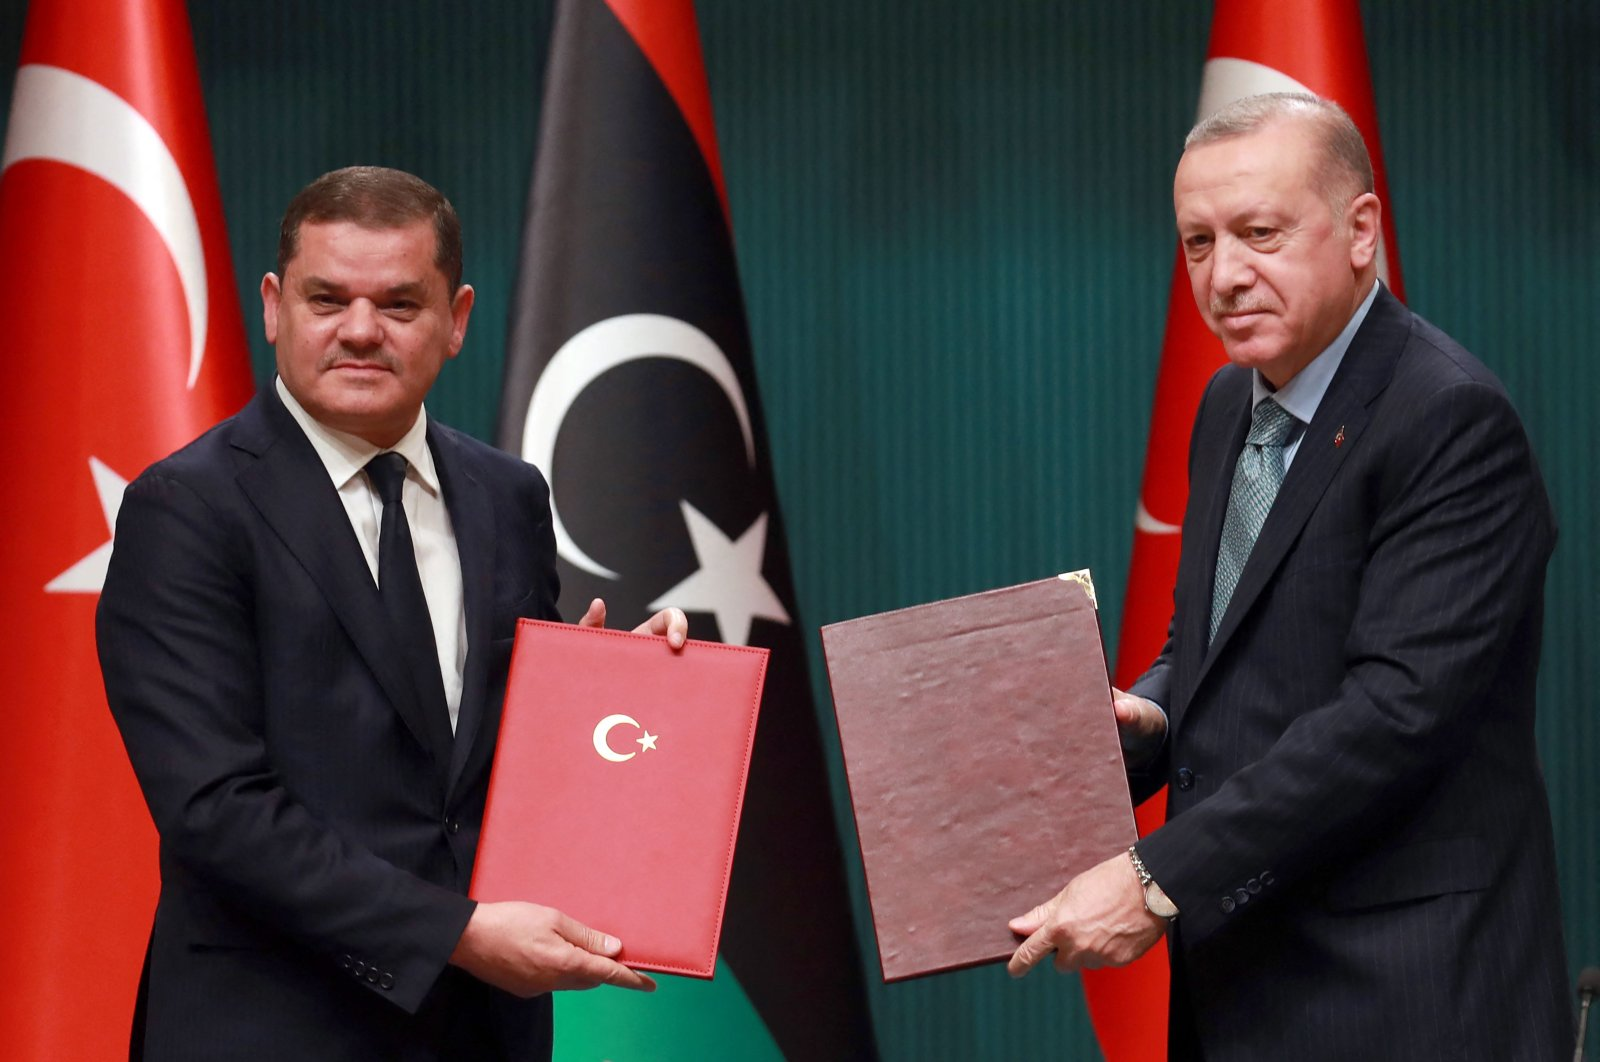 Turkish President Recep Tayyip Erdoğan (R) and Libya's interim Prime Minister Abdul Hamid Dbeibah pose for a photo during a signing ceremony after their meeting at the Presidential Palace in Ankara, Turkey, April 12, 2021. (Adem ALTAN/AFP Photo)